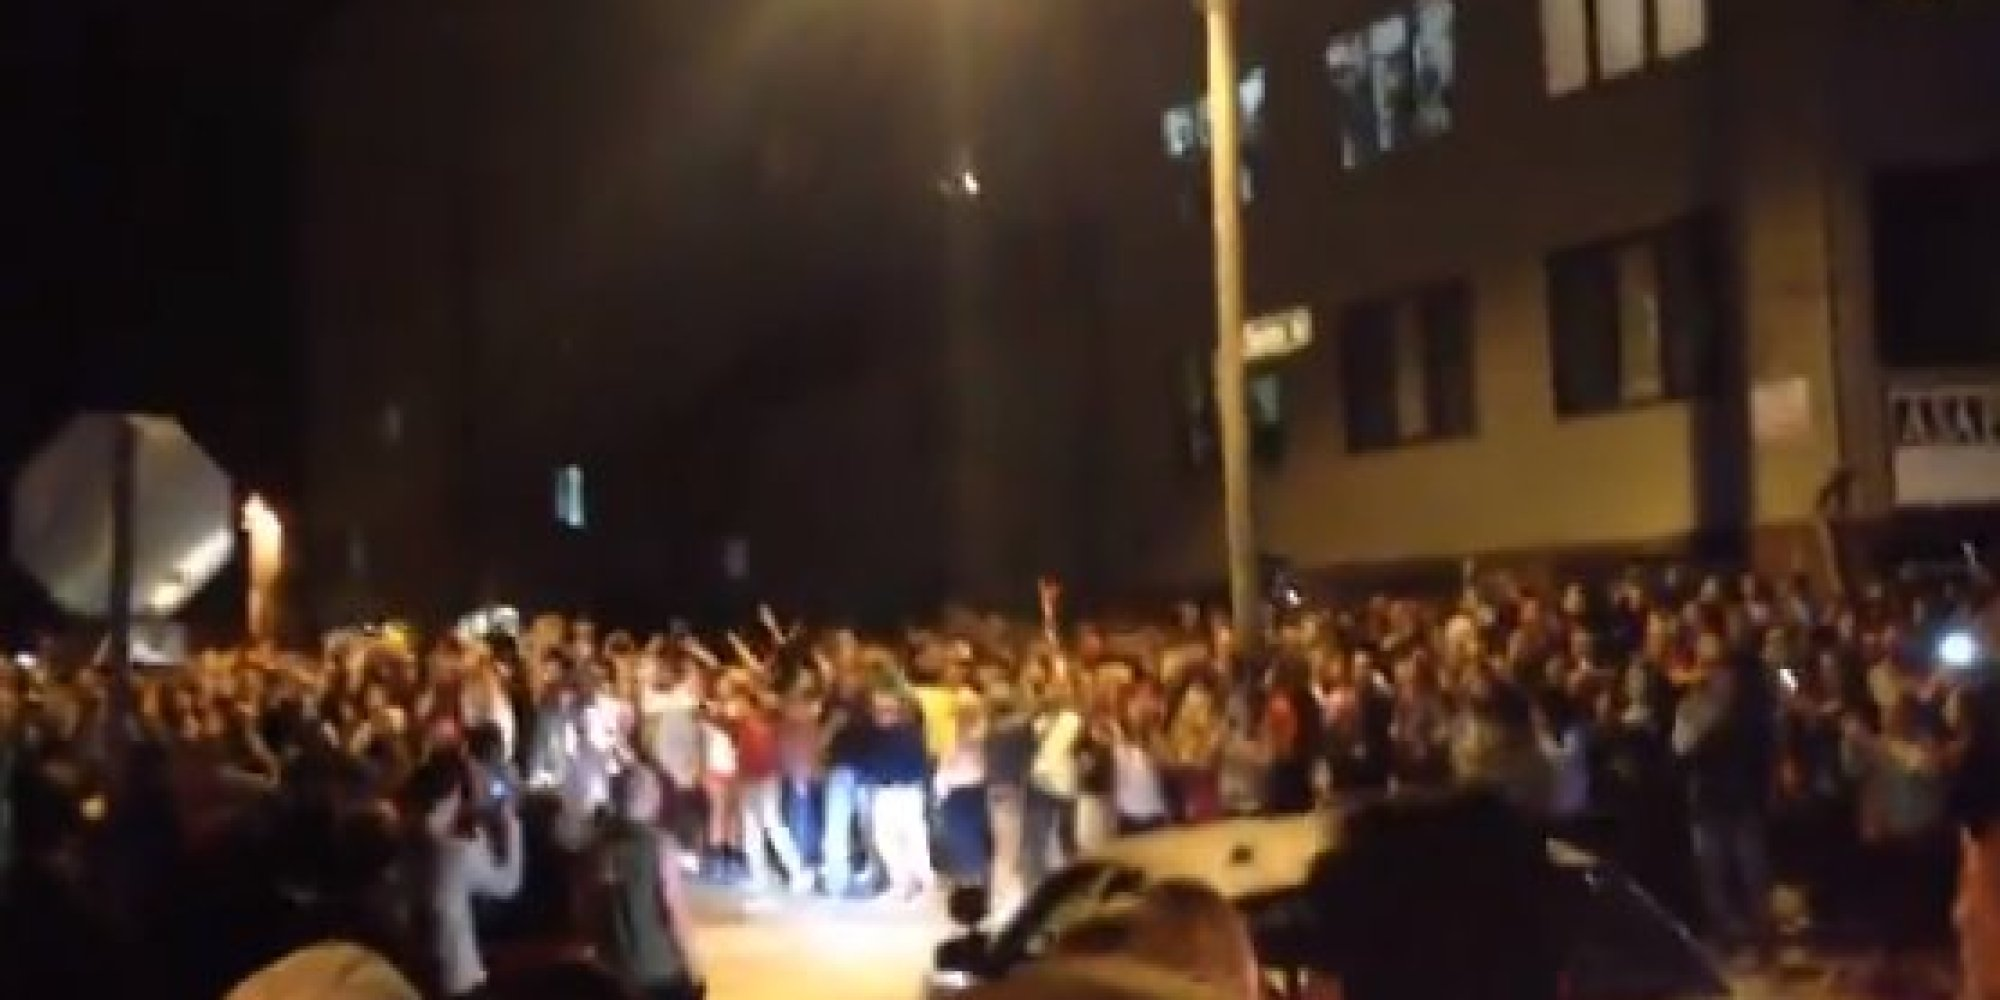 Police Say 1 Person Hurt In Iowa State University VEISHEA 2014 Riot